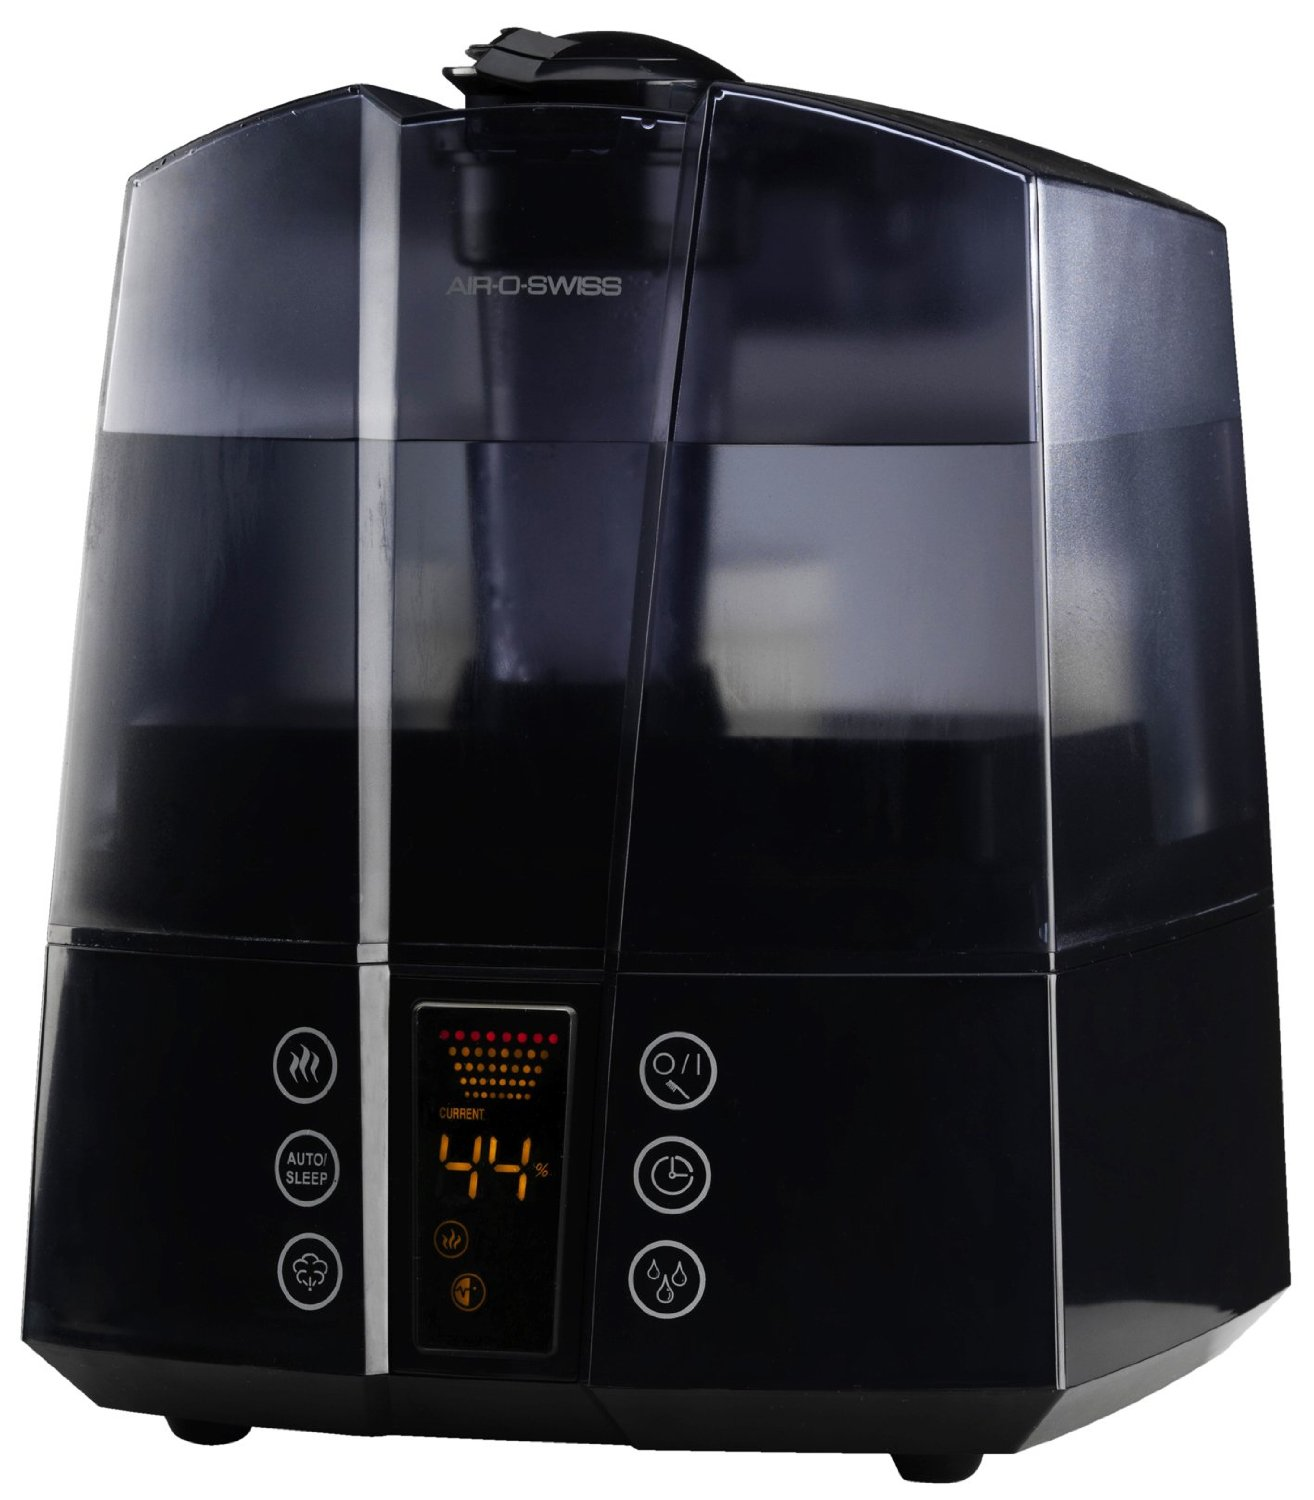 Air O Swiss AOS 7147 Ultrasonic Humidifier Warm and Cool Mist #70350F